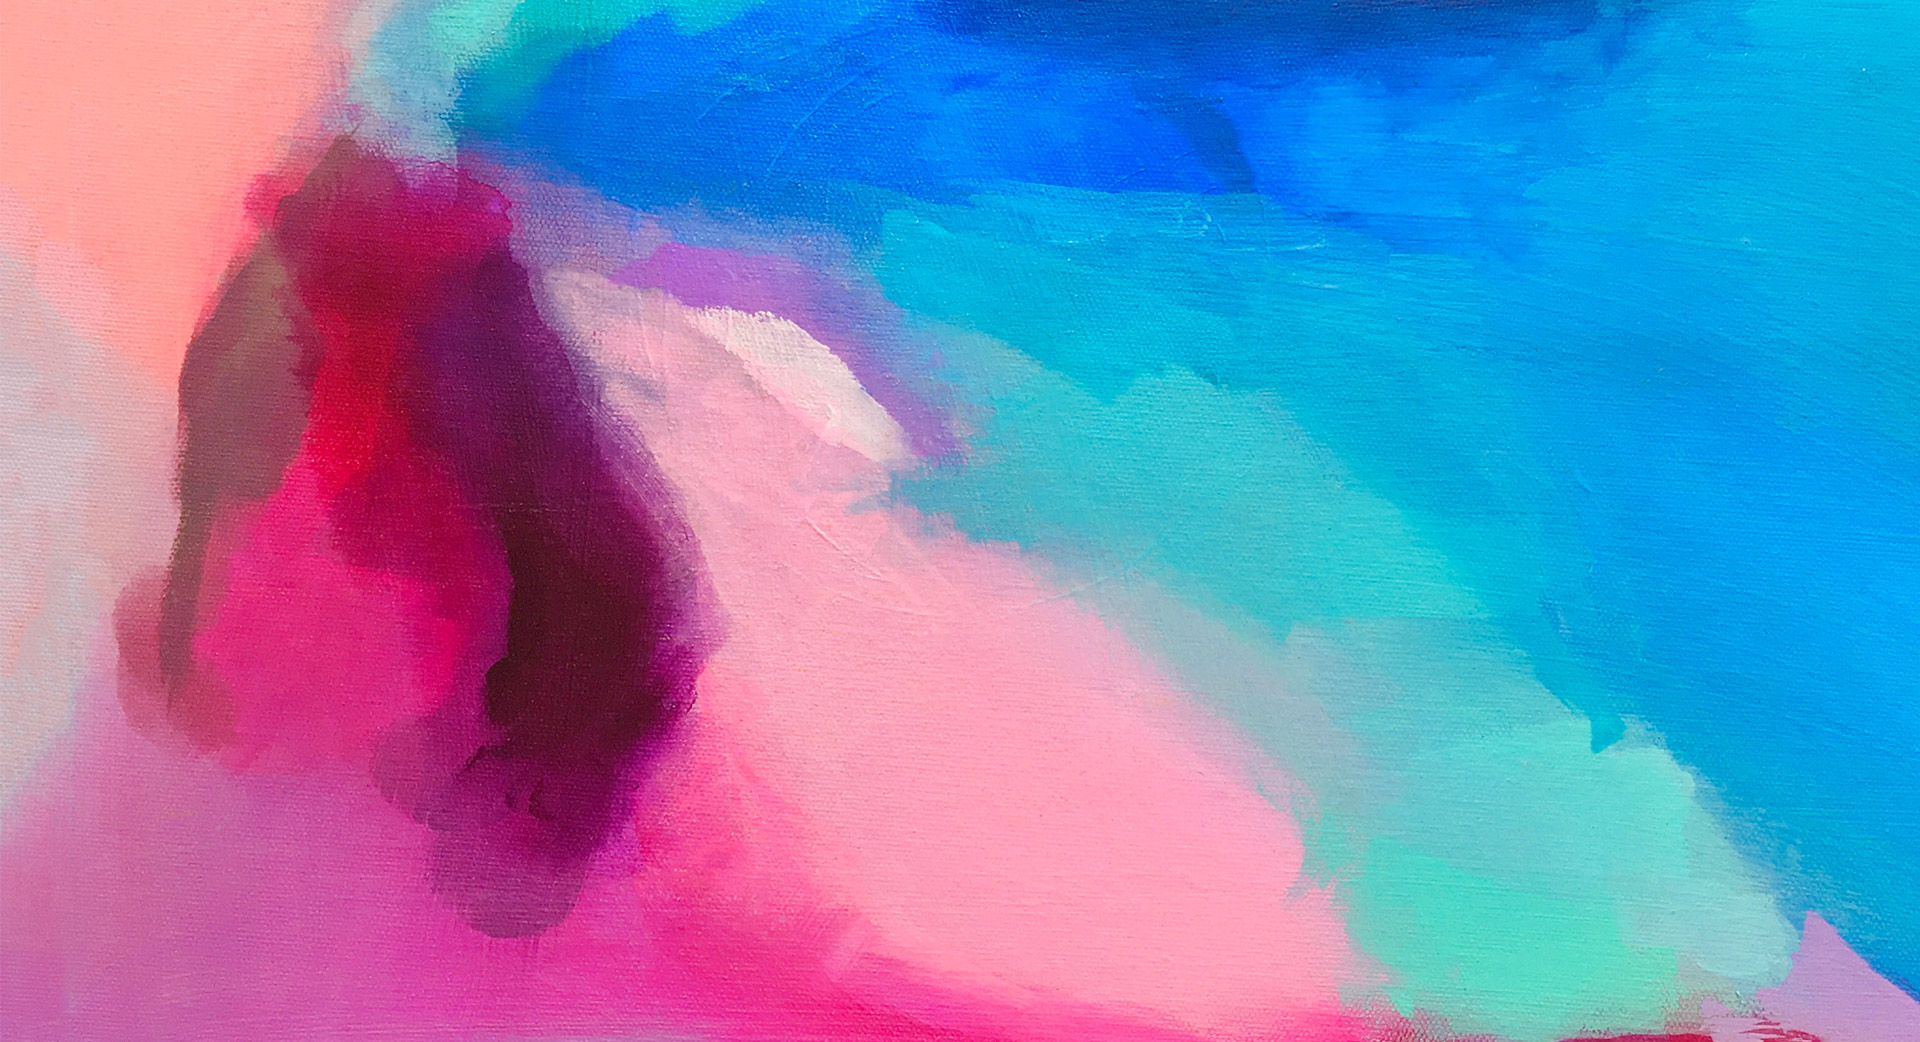 Abstract of a painting to illustrate legal news